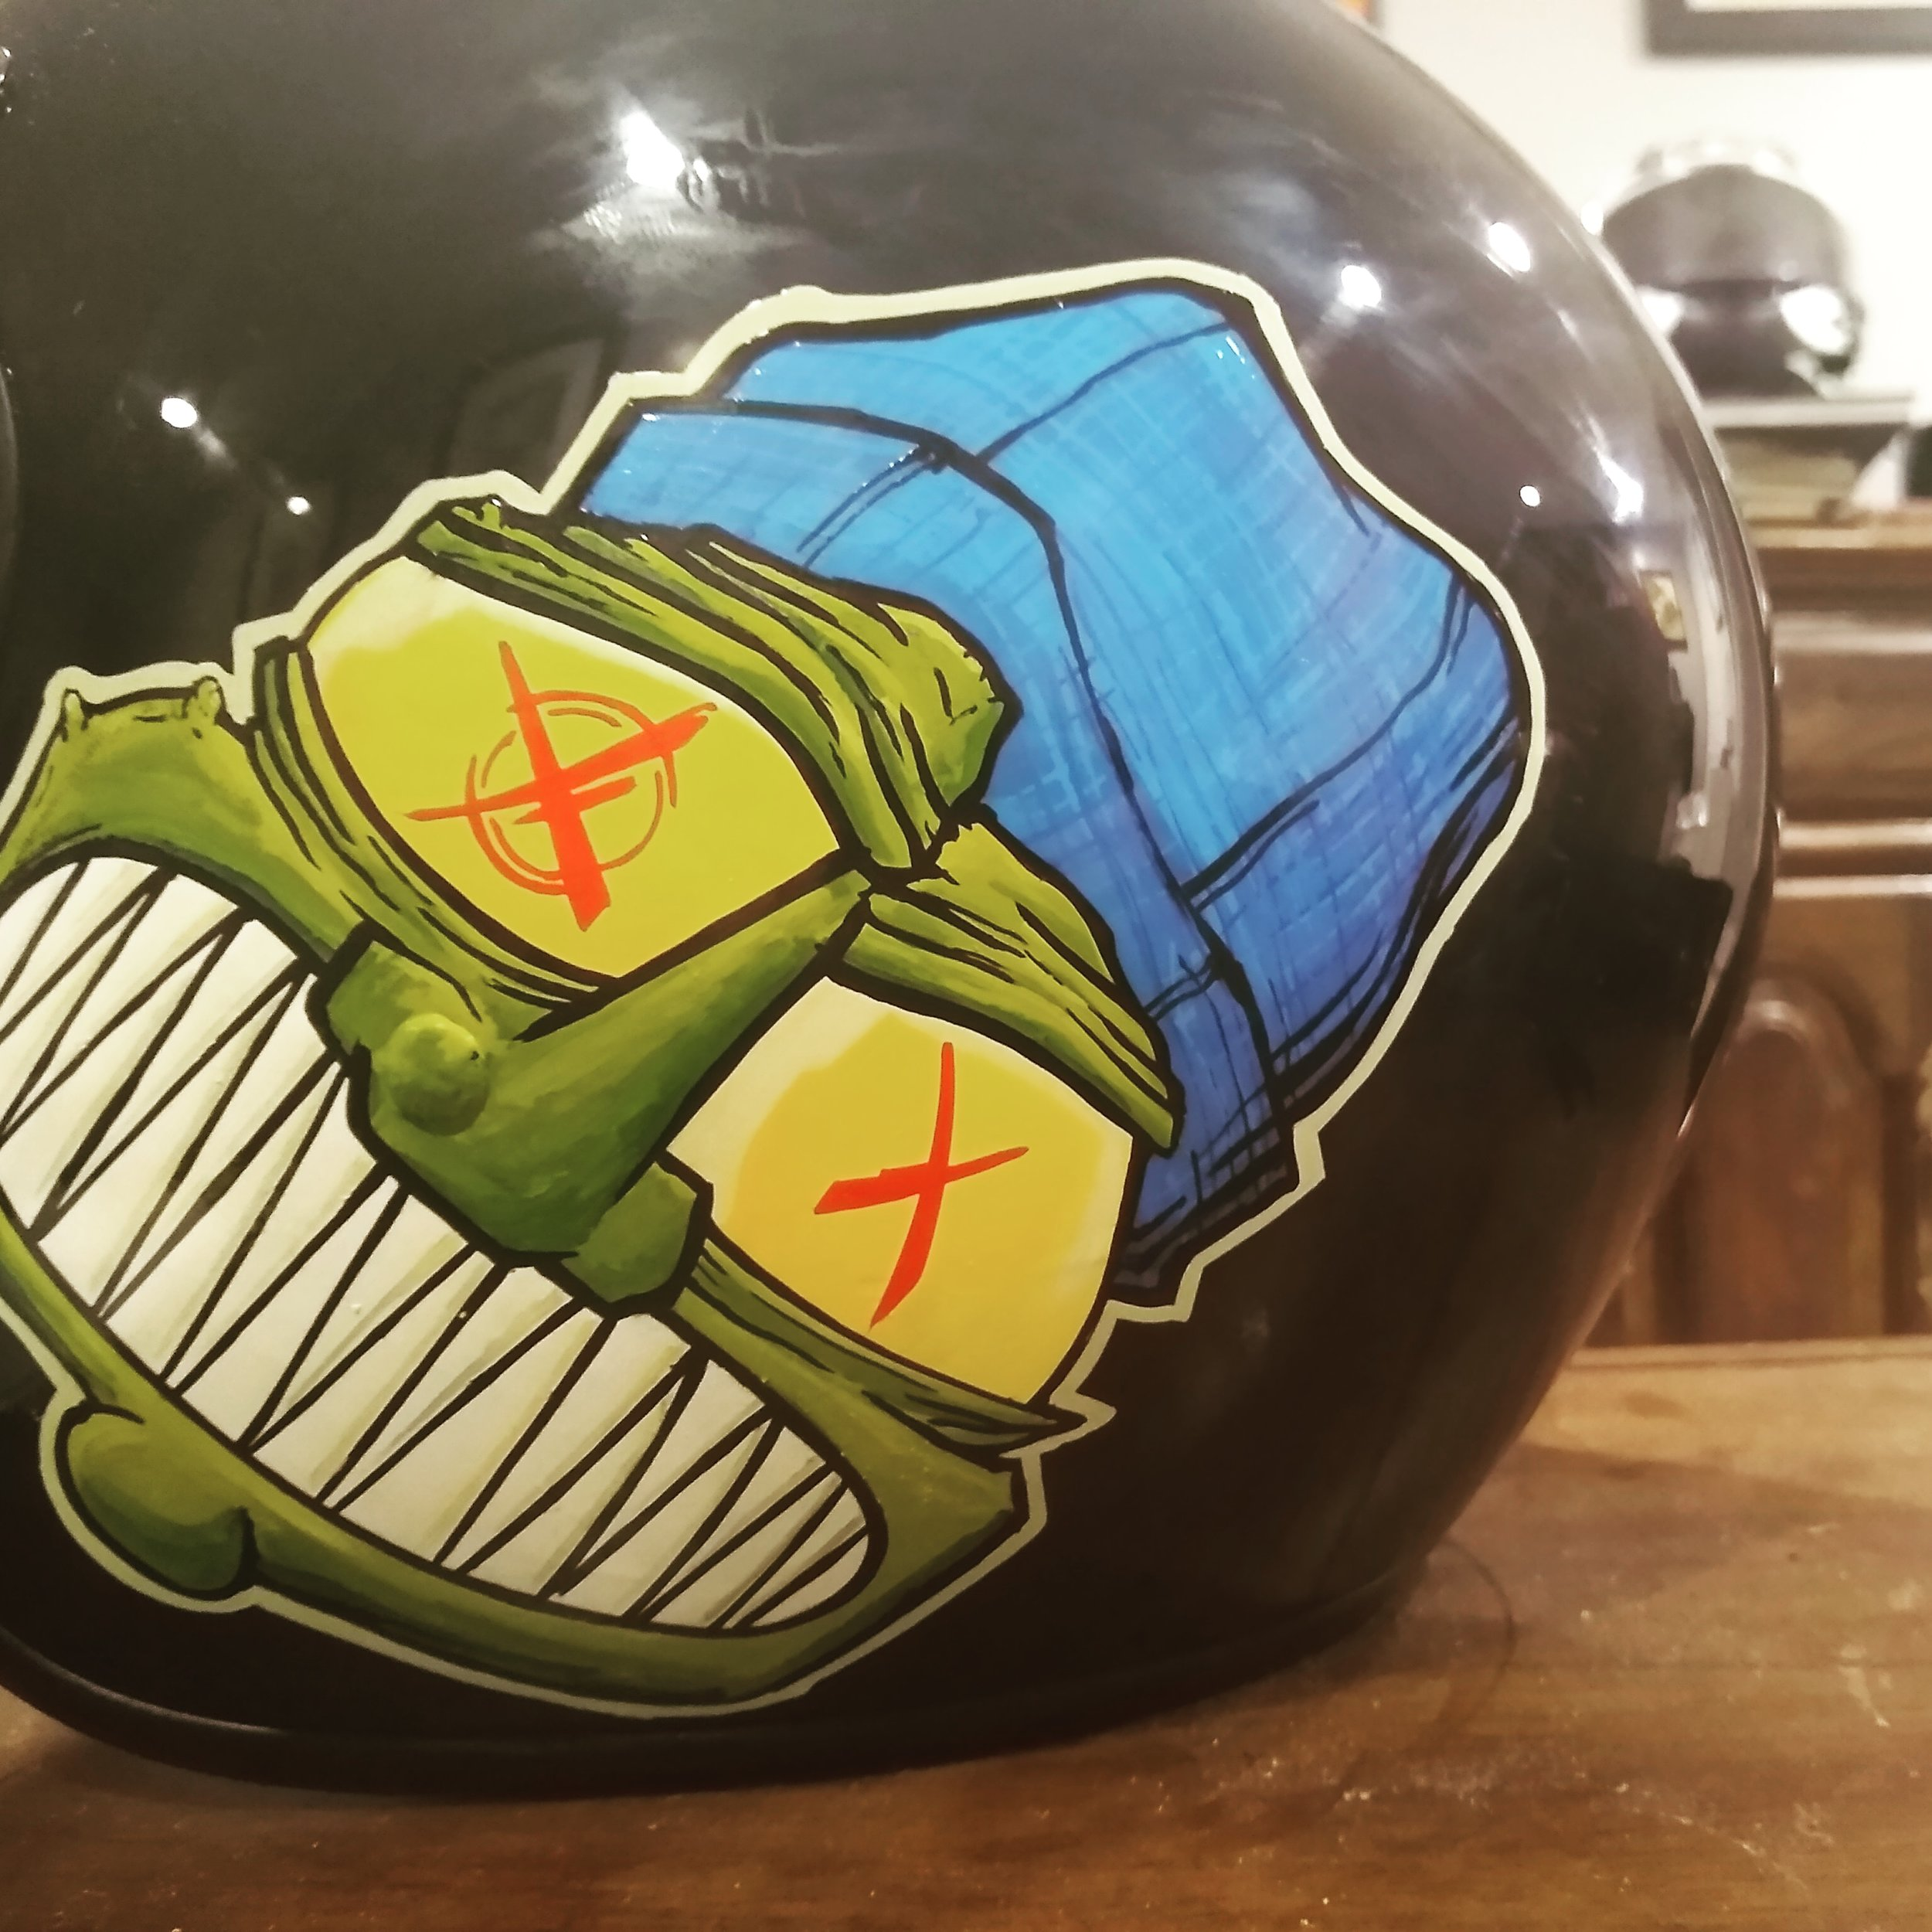 Hand-painted Helmet Raffles & Shows - This awesome lid was designed and donated for a Wild Rabbit Raffle on May 11. He has another helmet art piece showing at the upcoming Upcycle Helmet Art Show June 23. Get your own one of a kind helmet by just reaching out to @createnotduplicate!